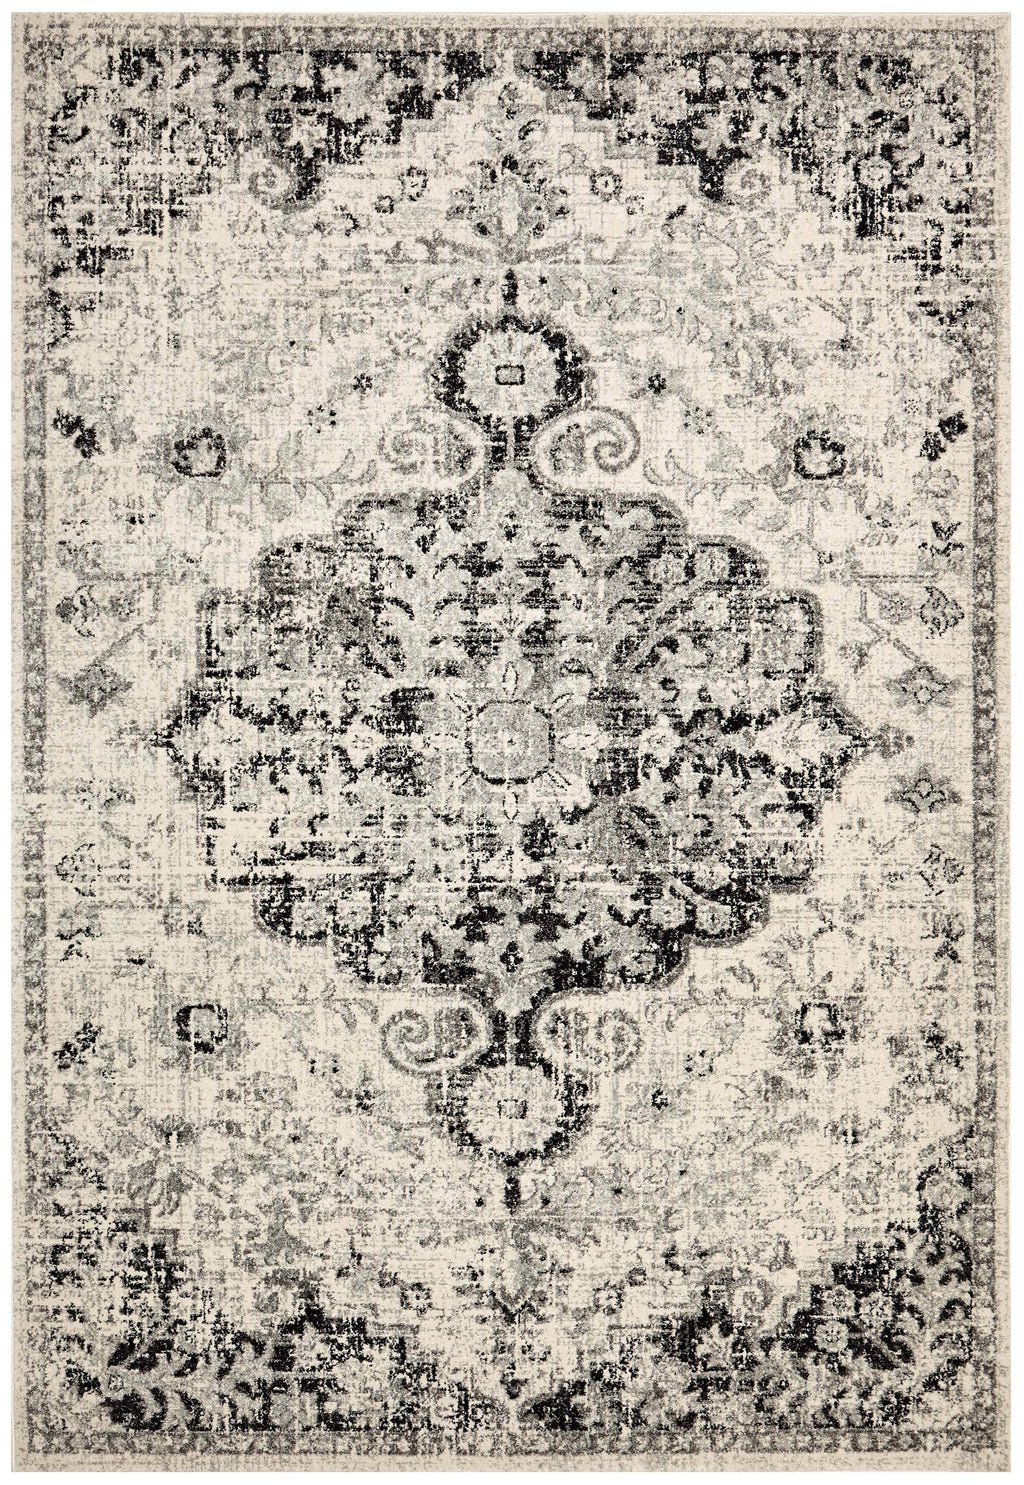 Agdash Cream & Black Antique Look Medallion Rug